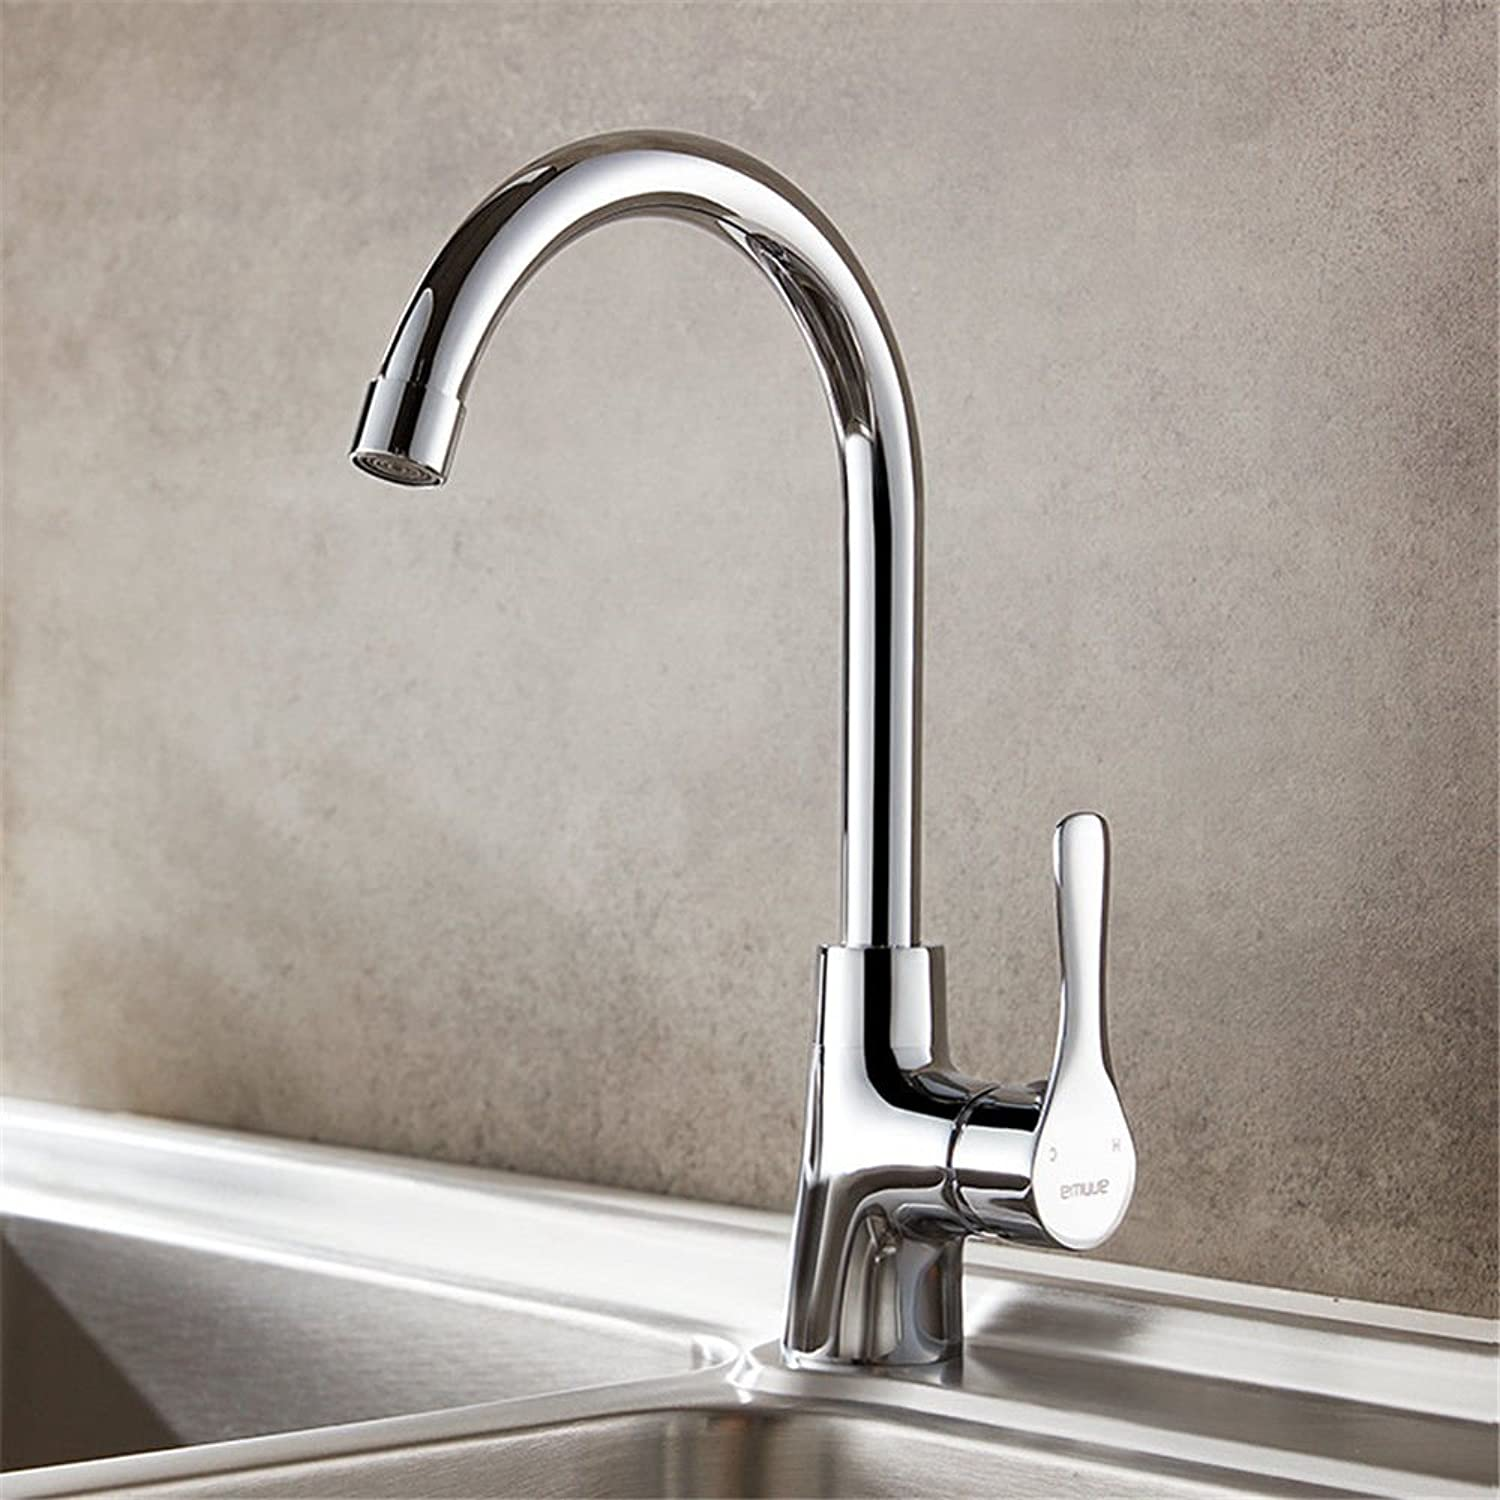 S.Twl.E Sink Mixer Tap Tap Tap Faucet Bathroom Kitchen Basin Tap Leakproof Save Water Copper Plating Hot And Cold Water c1fdf8